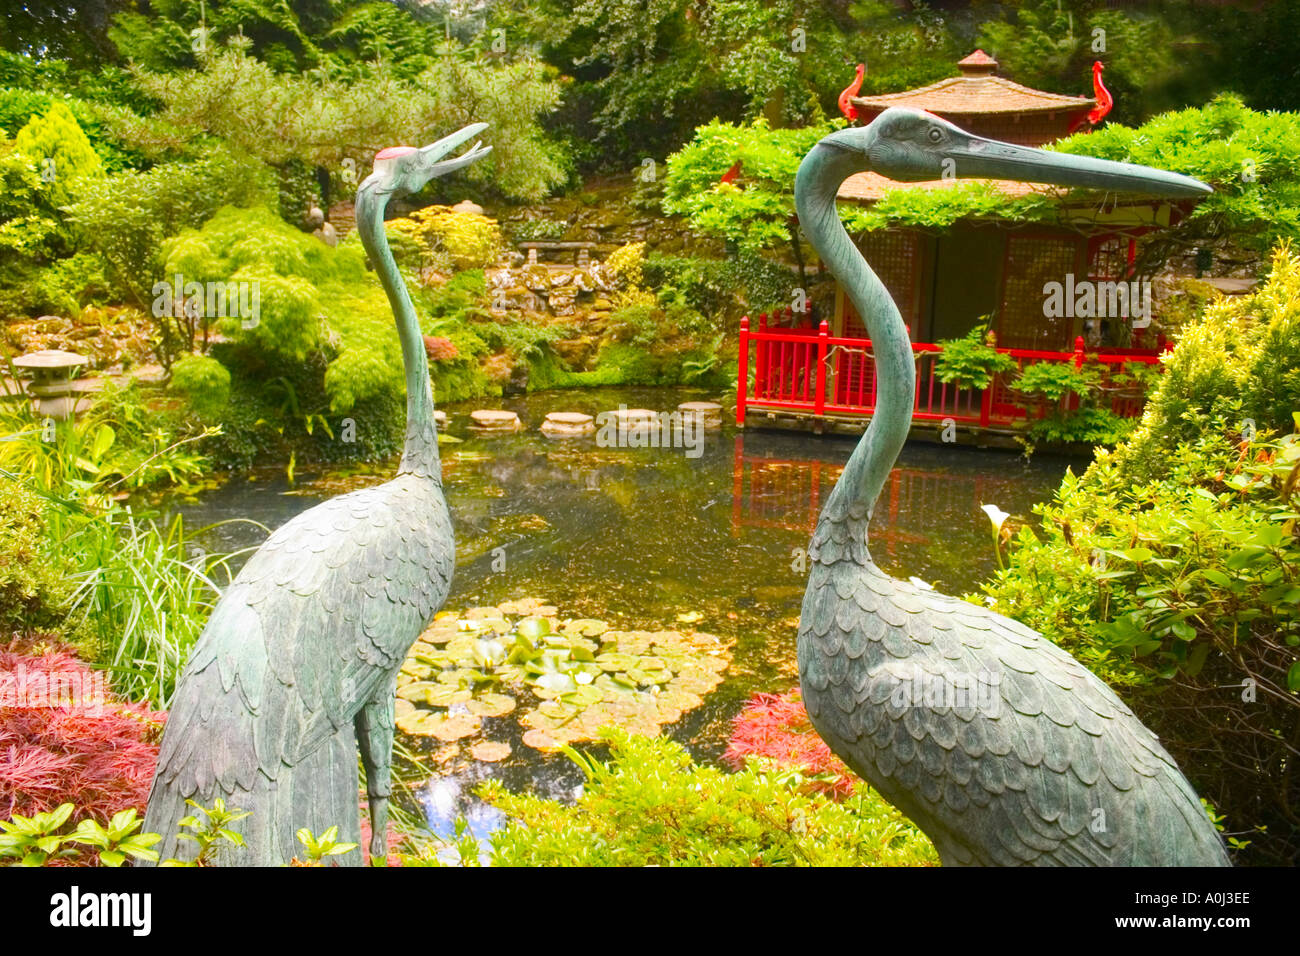 storks in japanese garden ornaments pond flowers water